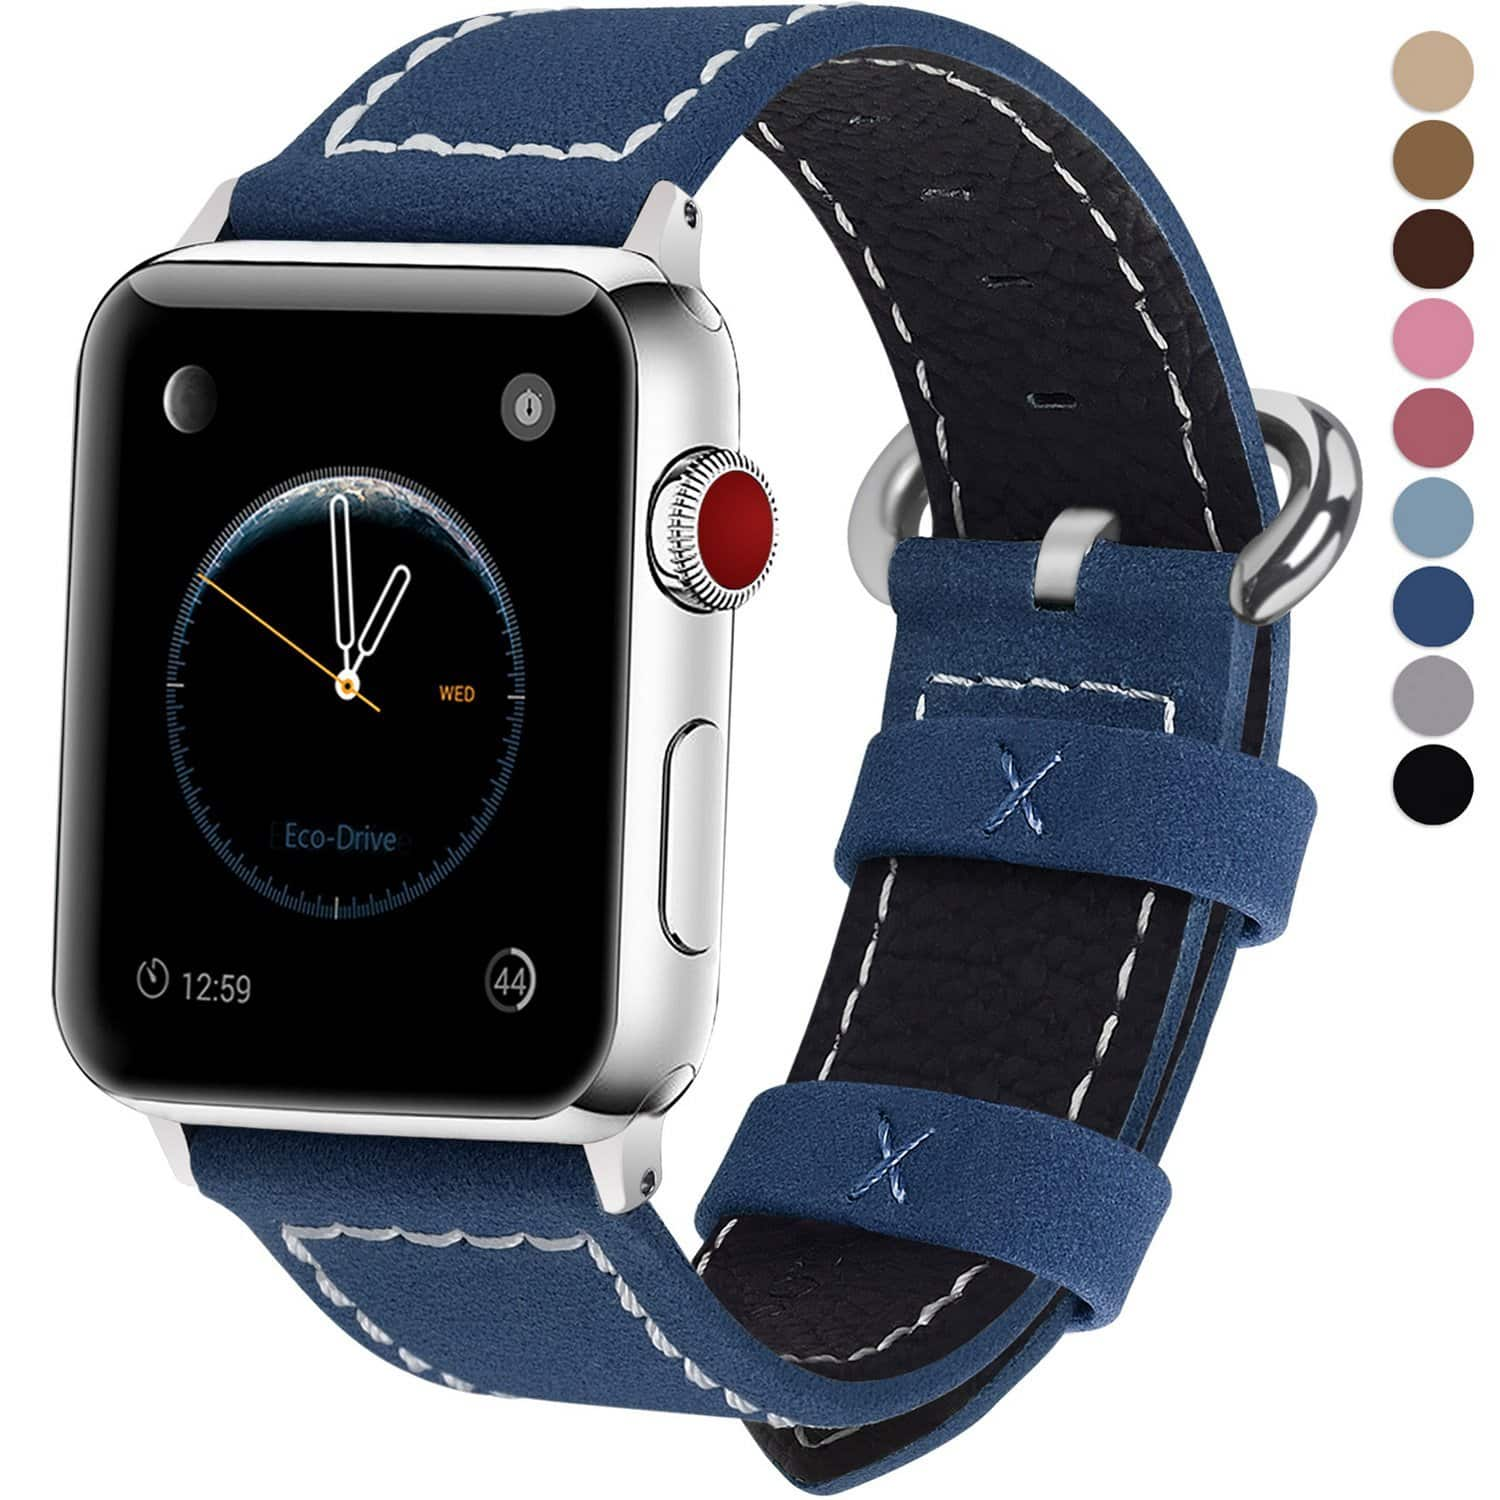 Apple Watch Leather Replacement Bands 38 & 42 mm in 7 colors $6.08 @ Amazon